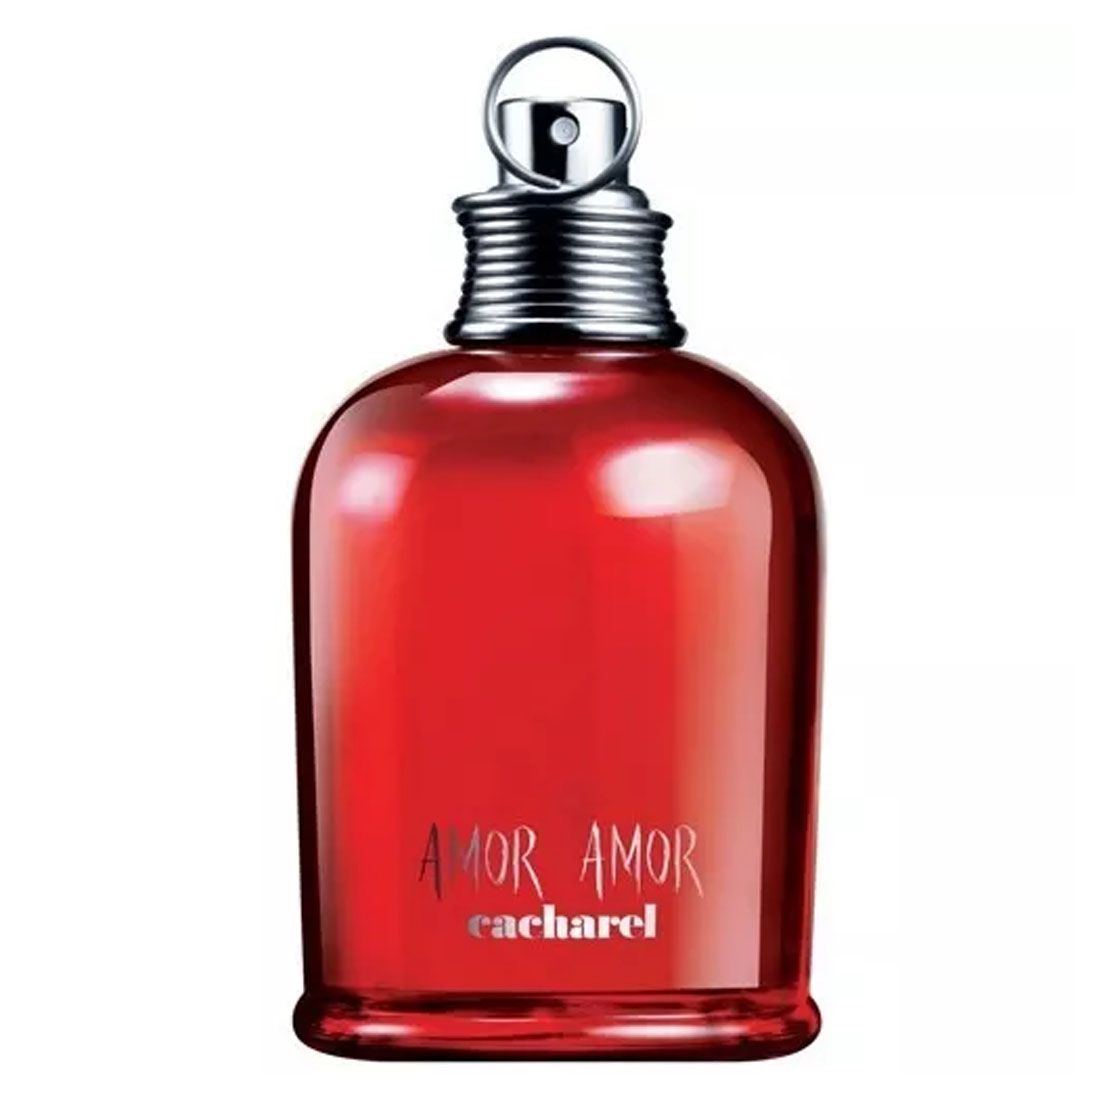 Perfume Amor Amor Cacharrel Eau Toilette 100ML